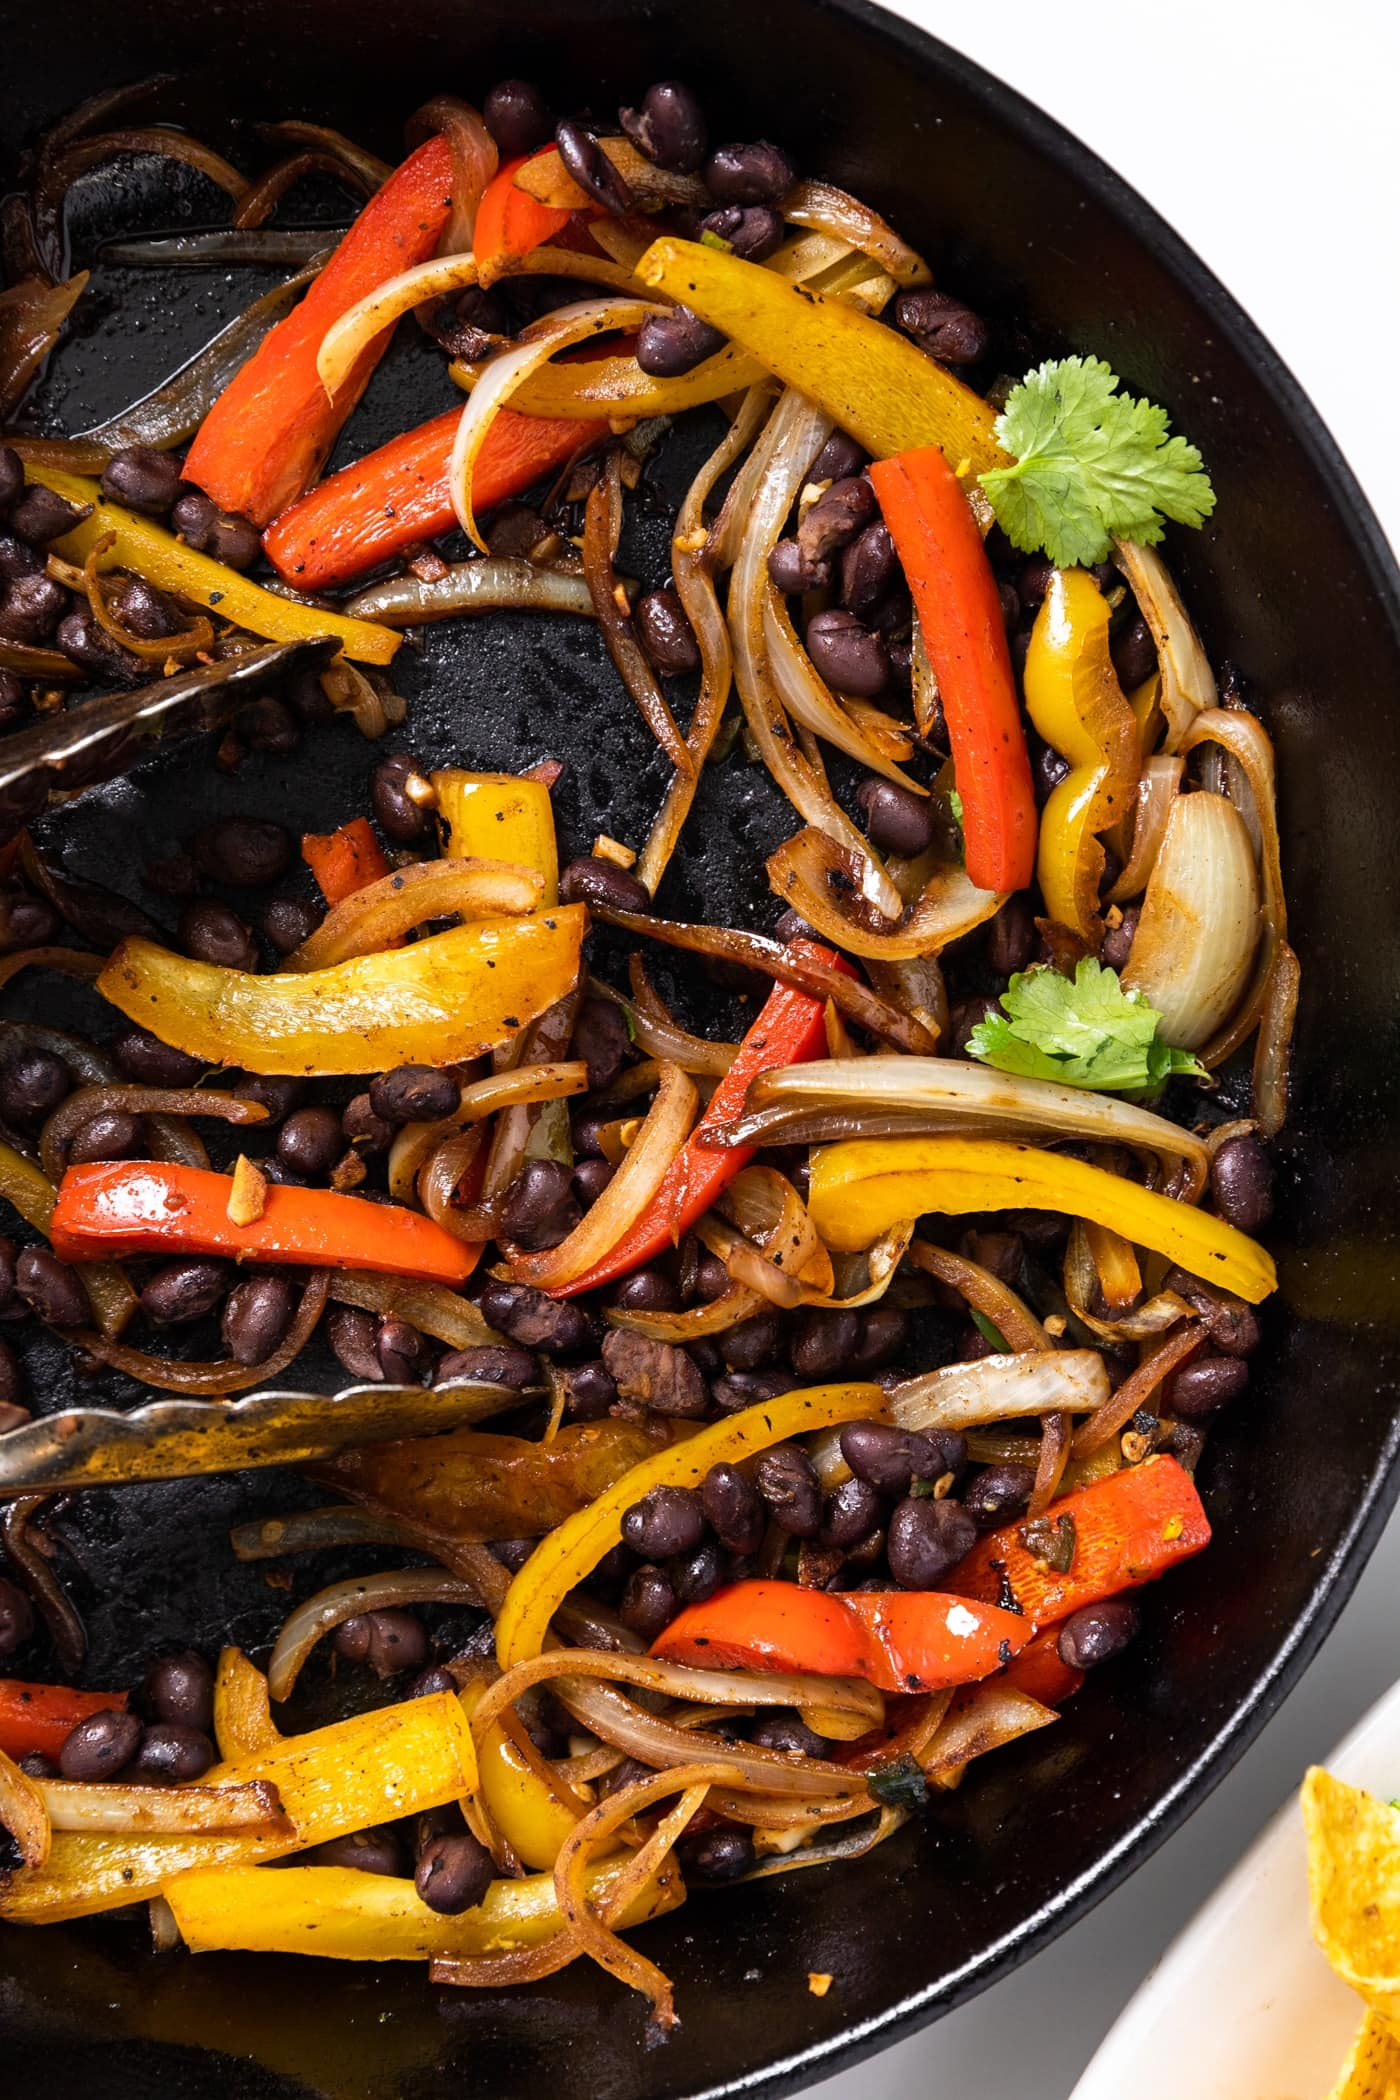 Top down view of black skillet filled with red and yellow peppers along with black beans all on white countertop